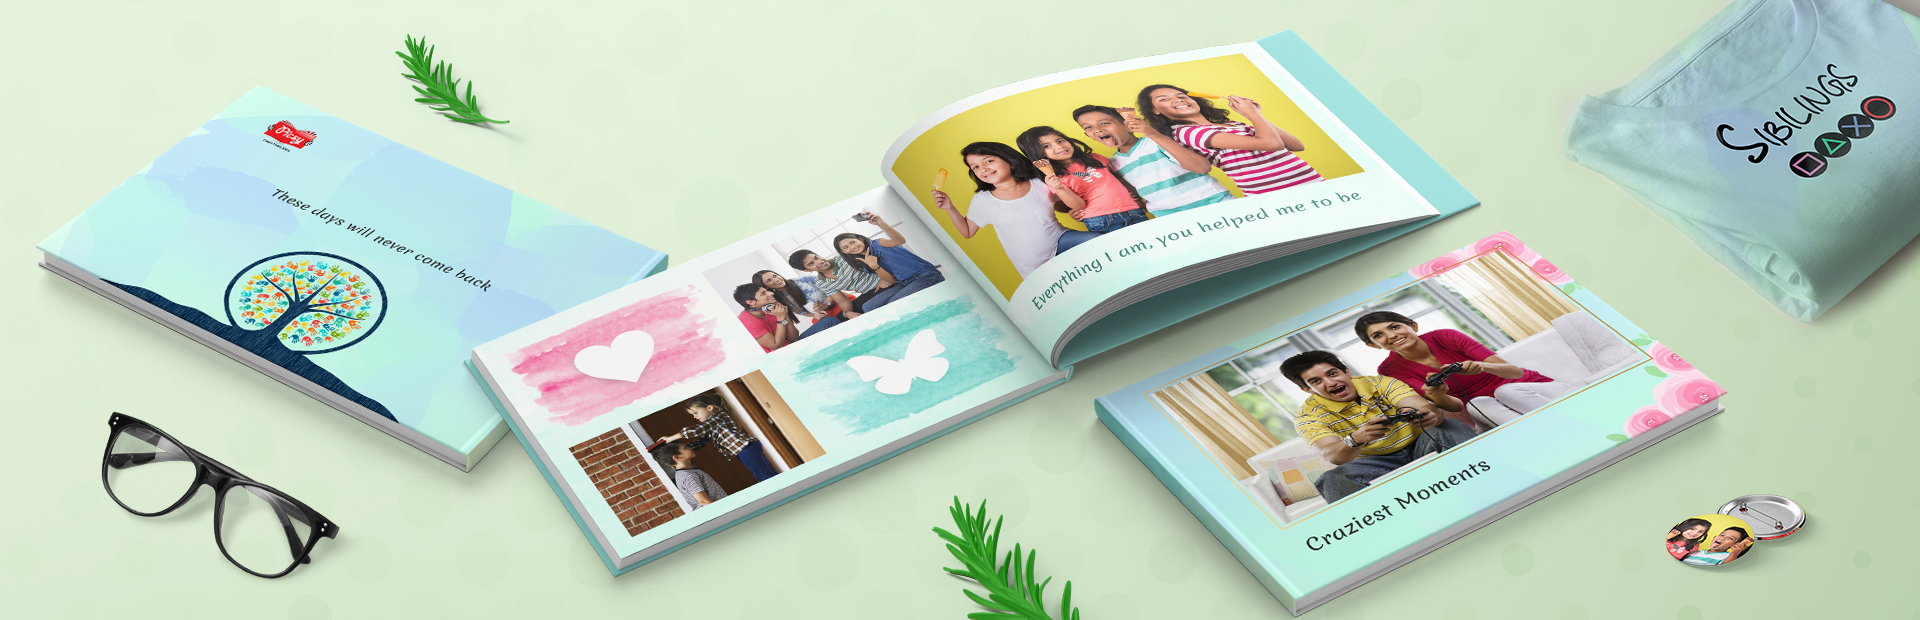 Siblings Photo Book Printing